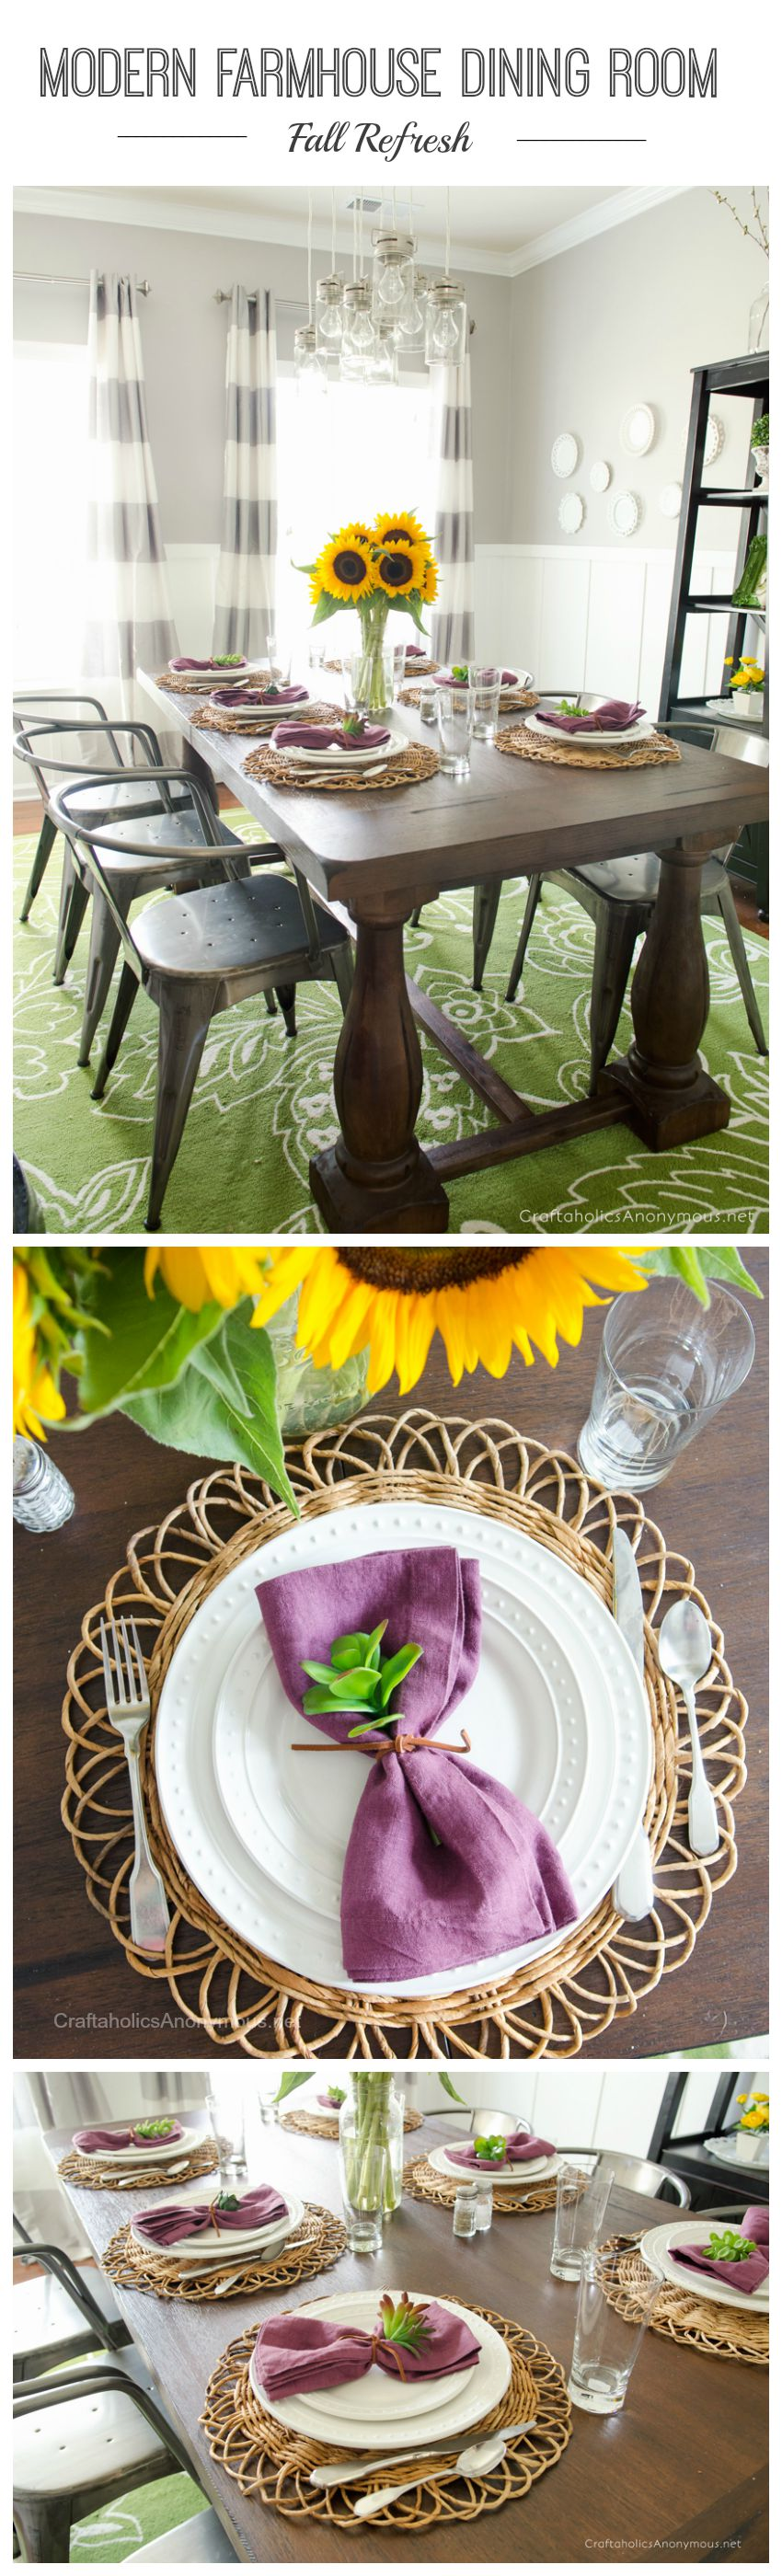 farmhouse dining room collage